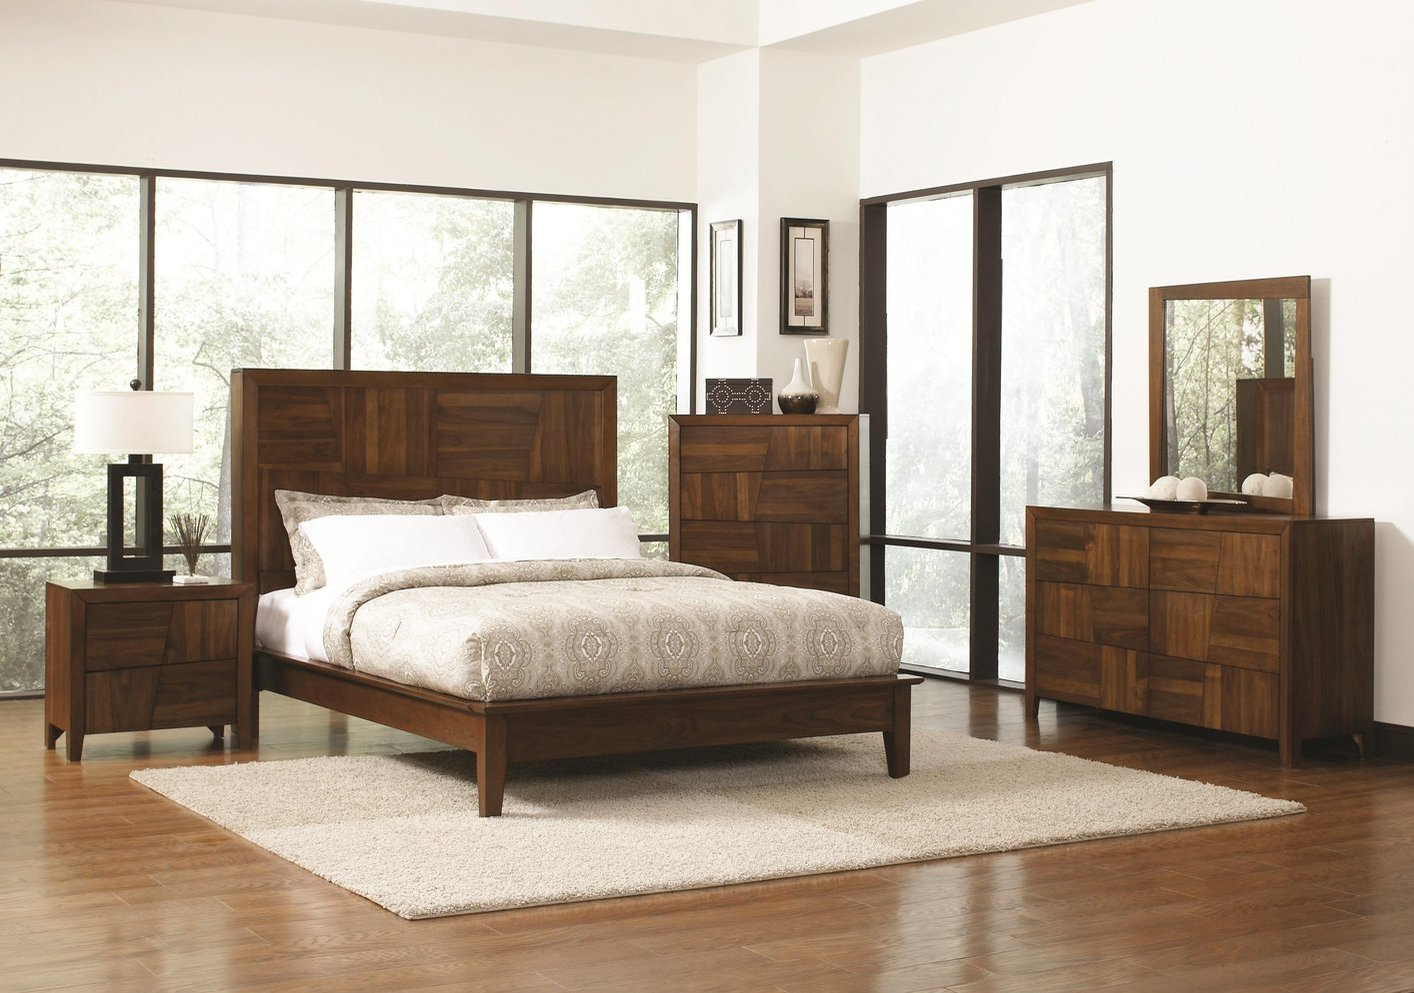 Tappeto Mondrian Coaster 202841ke Brown Eastern King Size Wood Bed Steal